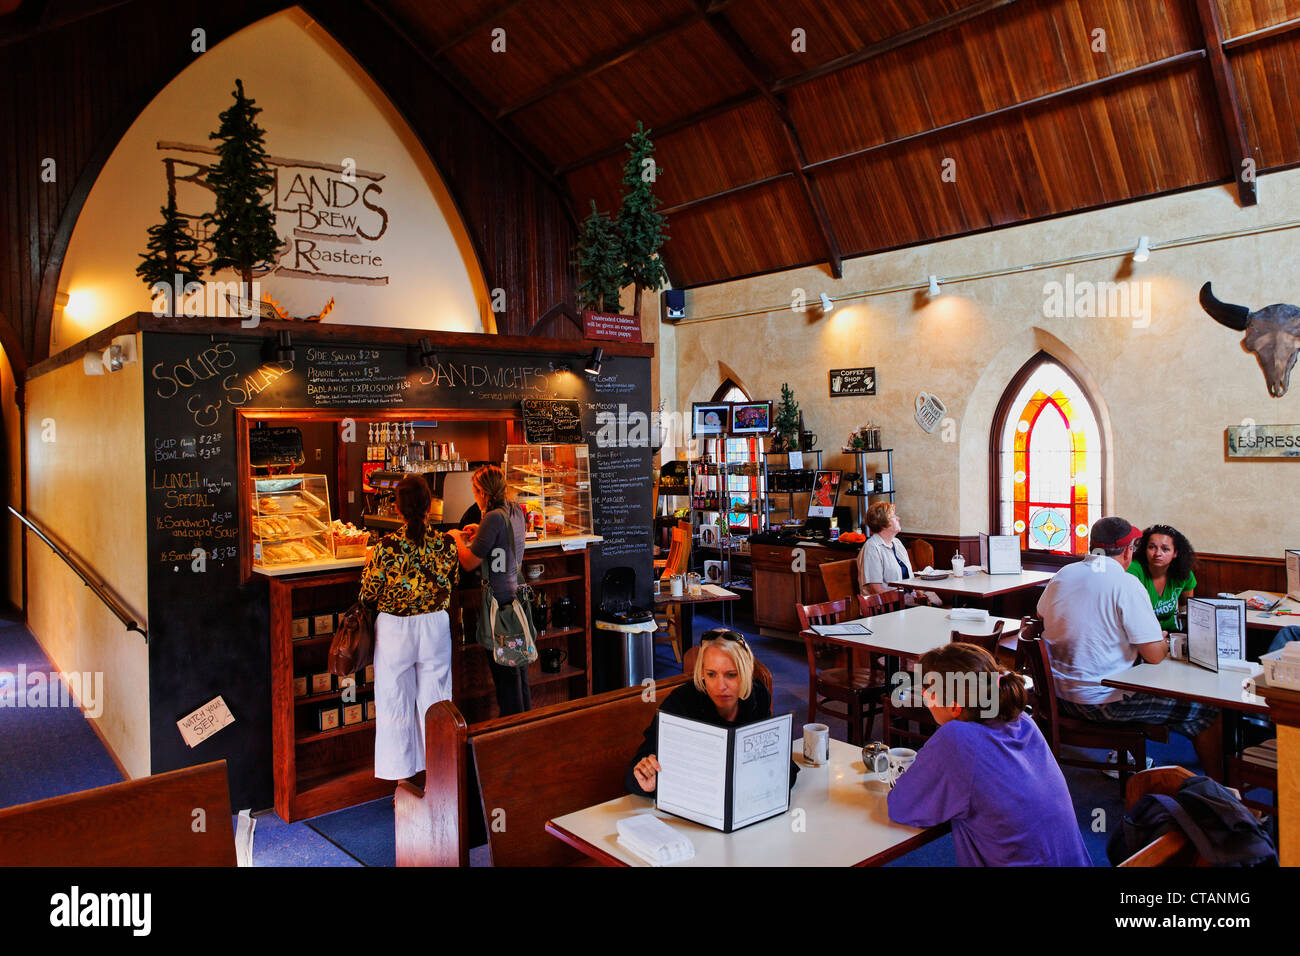 Guests at the Badlands Brew Cafe, Dickinson, Stark County, North Dakota, USA - Stock Image